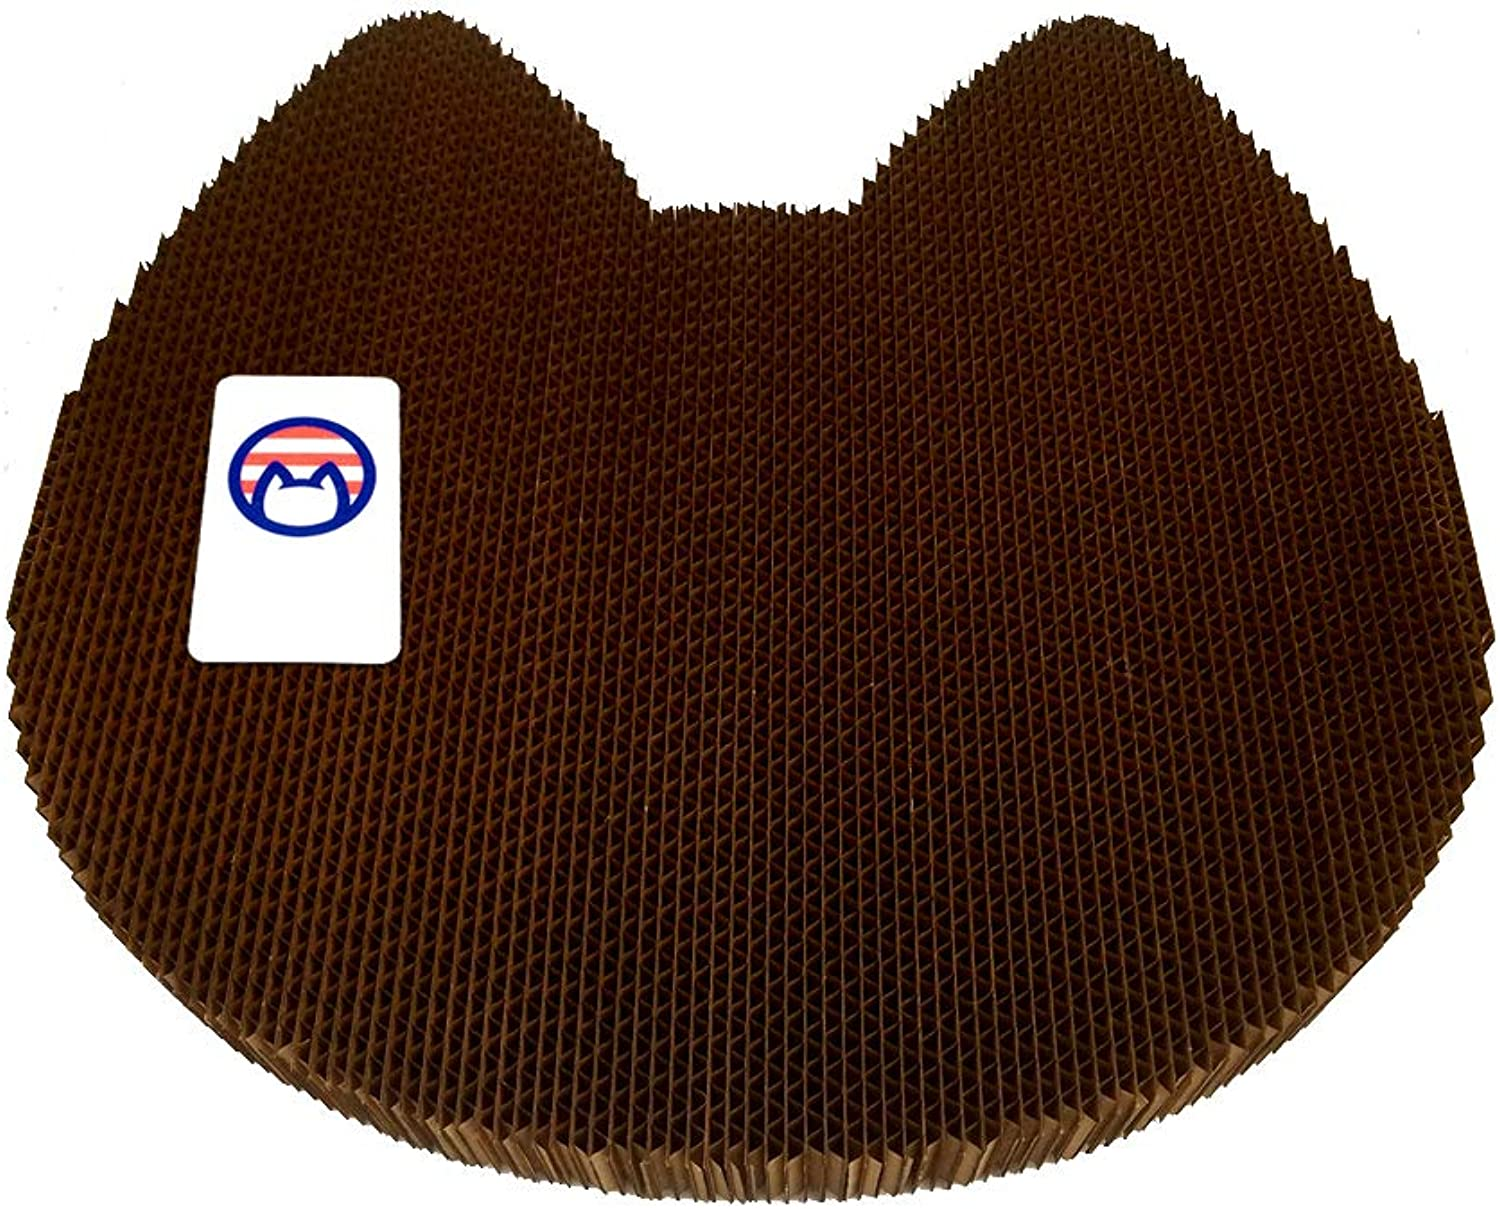 Americat Company Cat Scratcher and Lounger  Made in The USA  XL, Reversible, Heavy, Designed to Last  Cat Shape